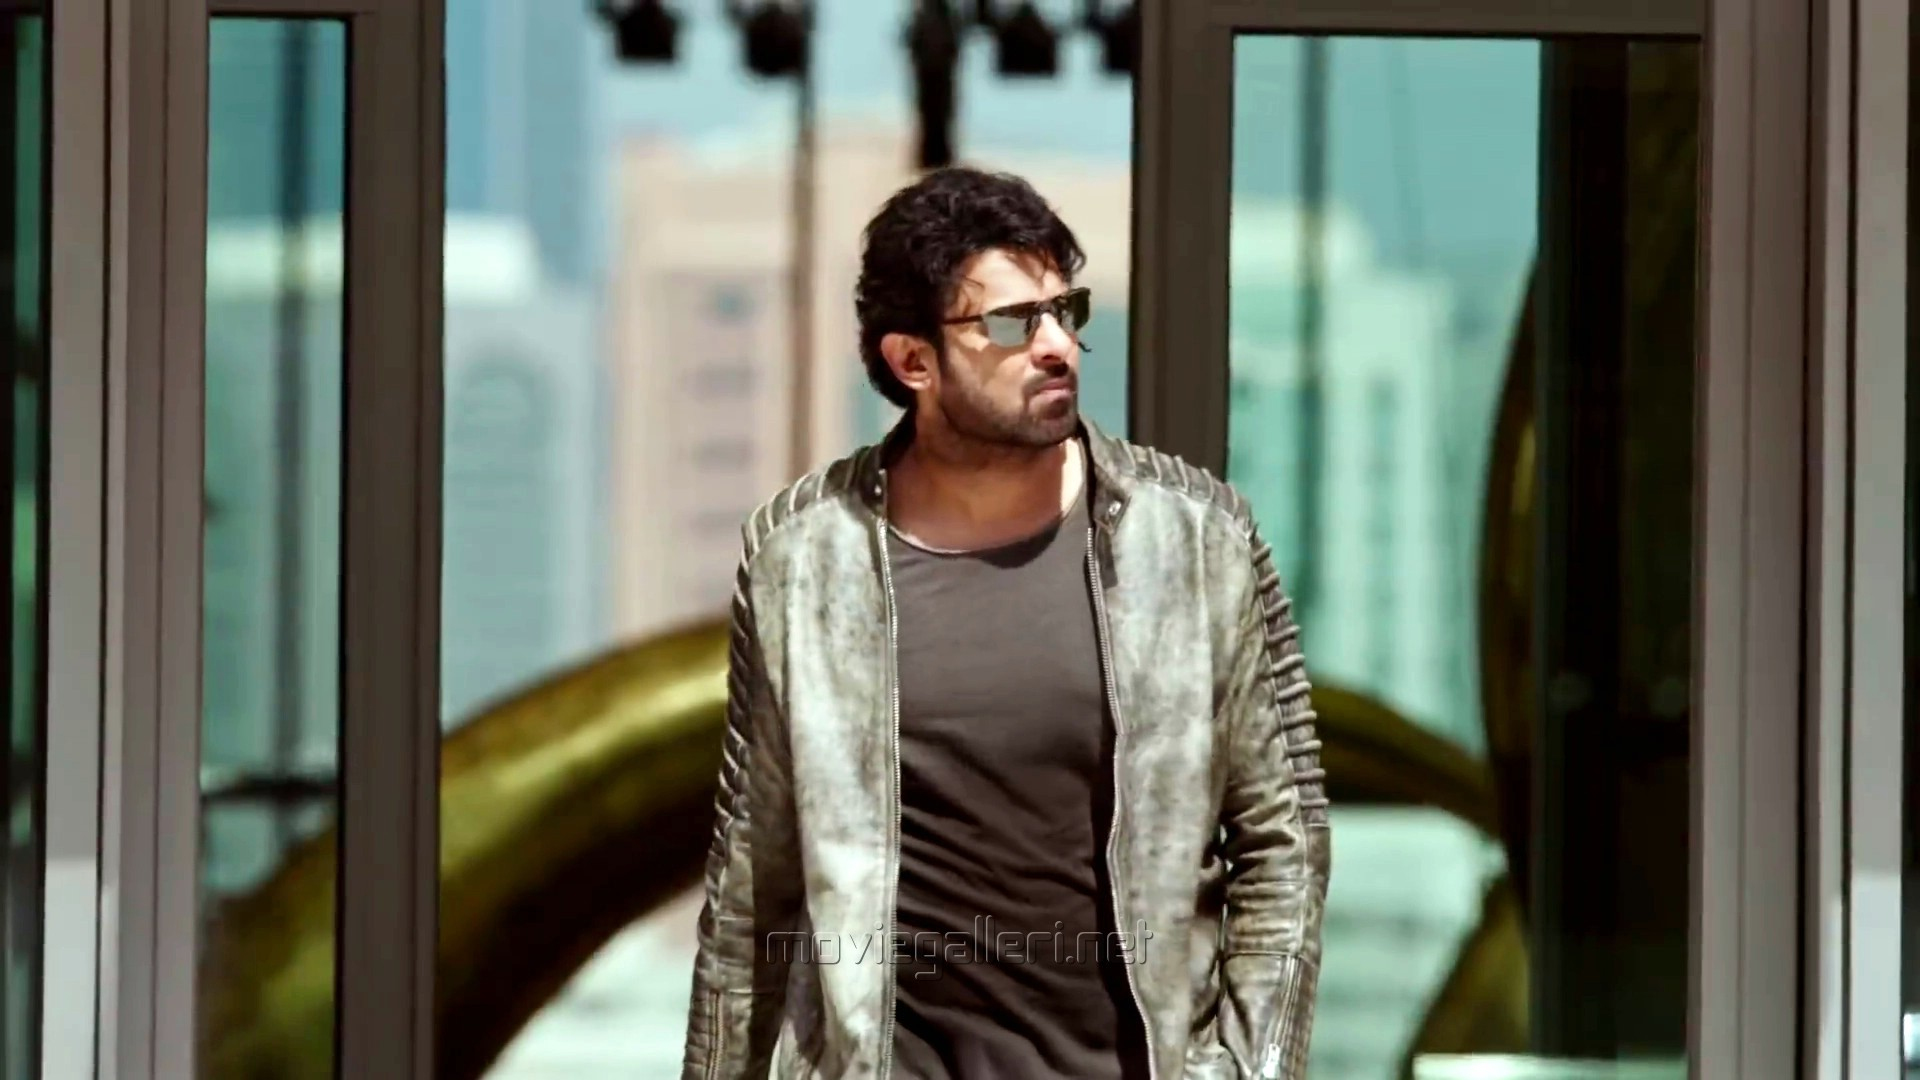 Prabhas Upcoming Movies List In 2017 2018 2019: Prabhas Saaho Release Date On 15th August 2019